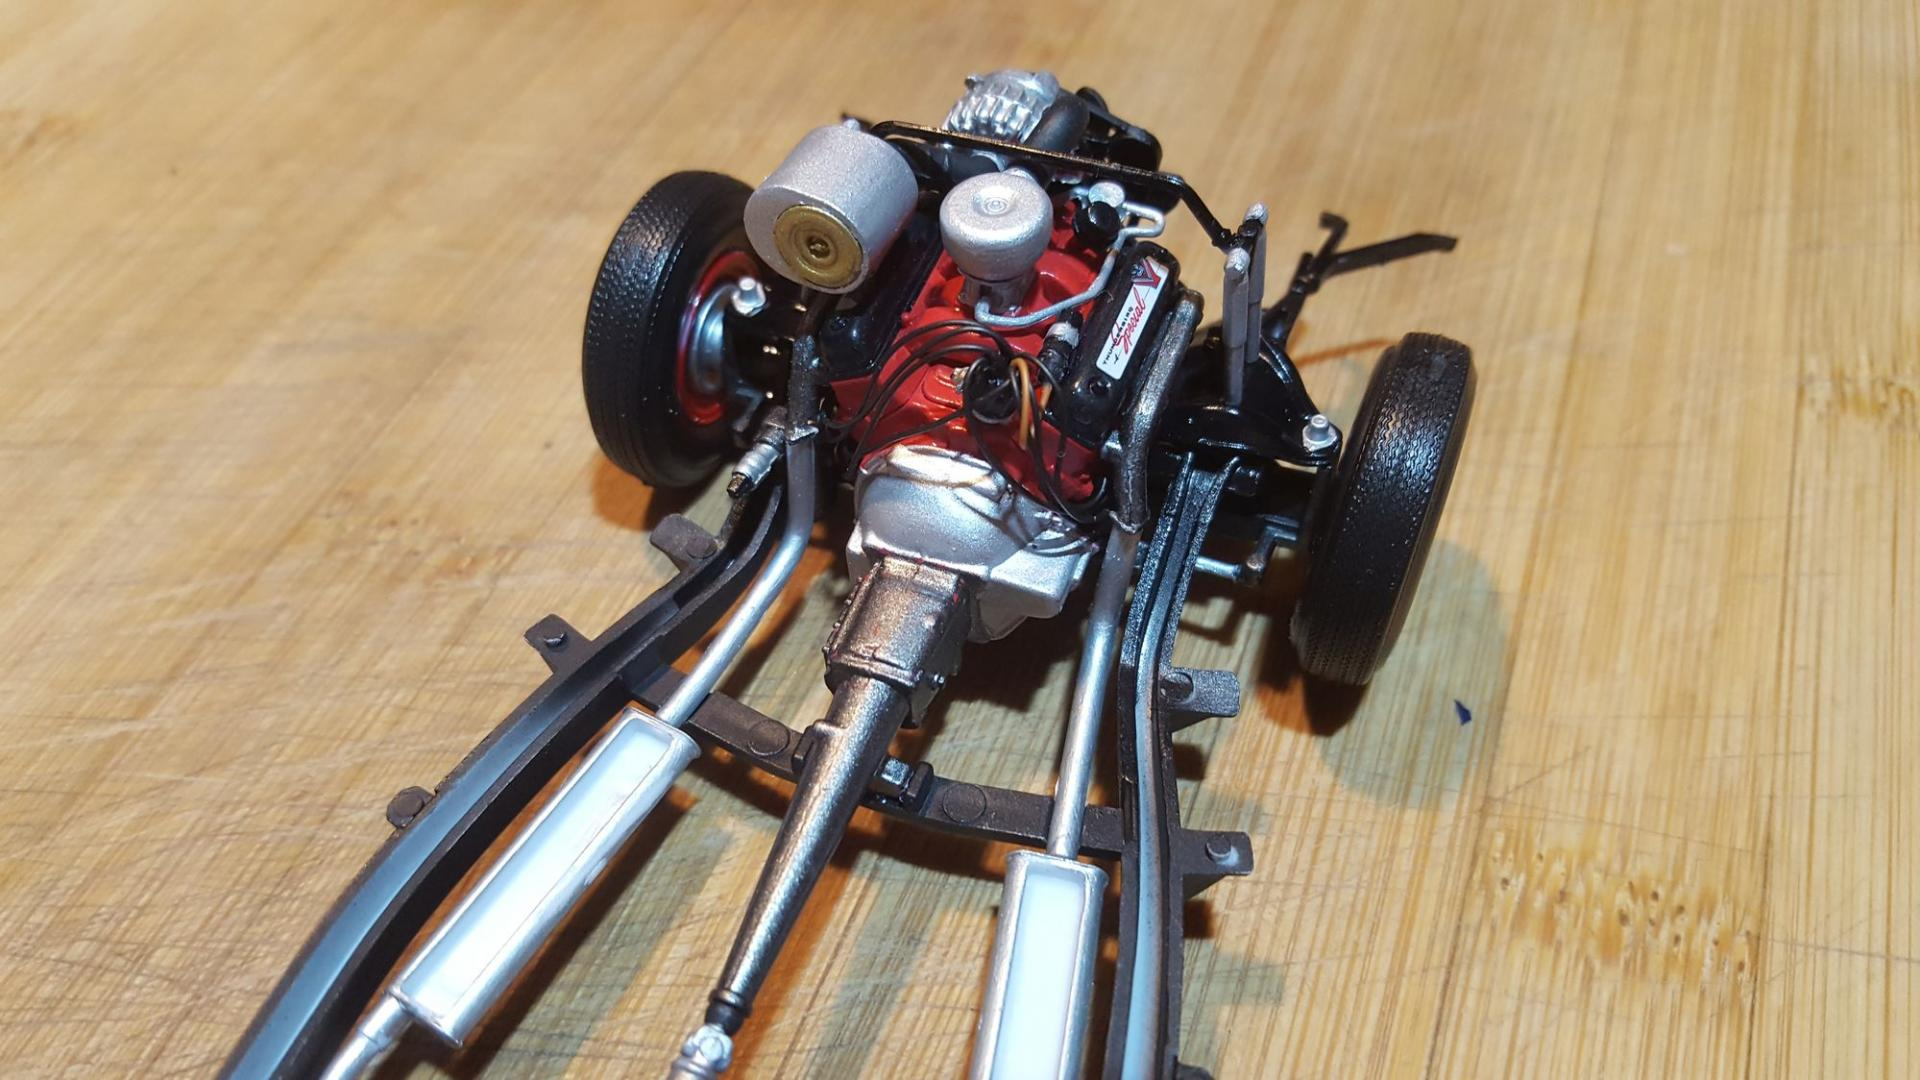 Chassis - Assembled - 7.jpg